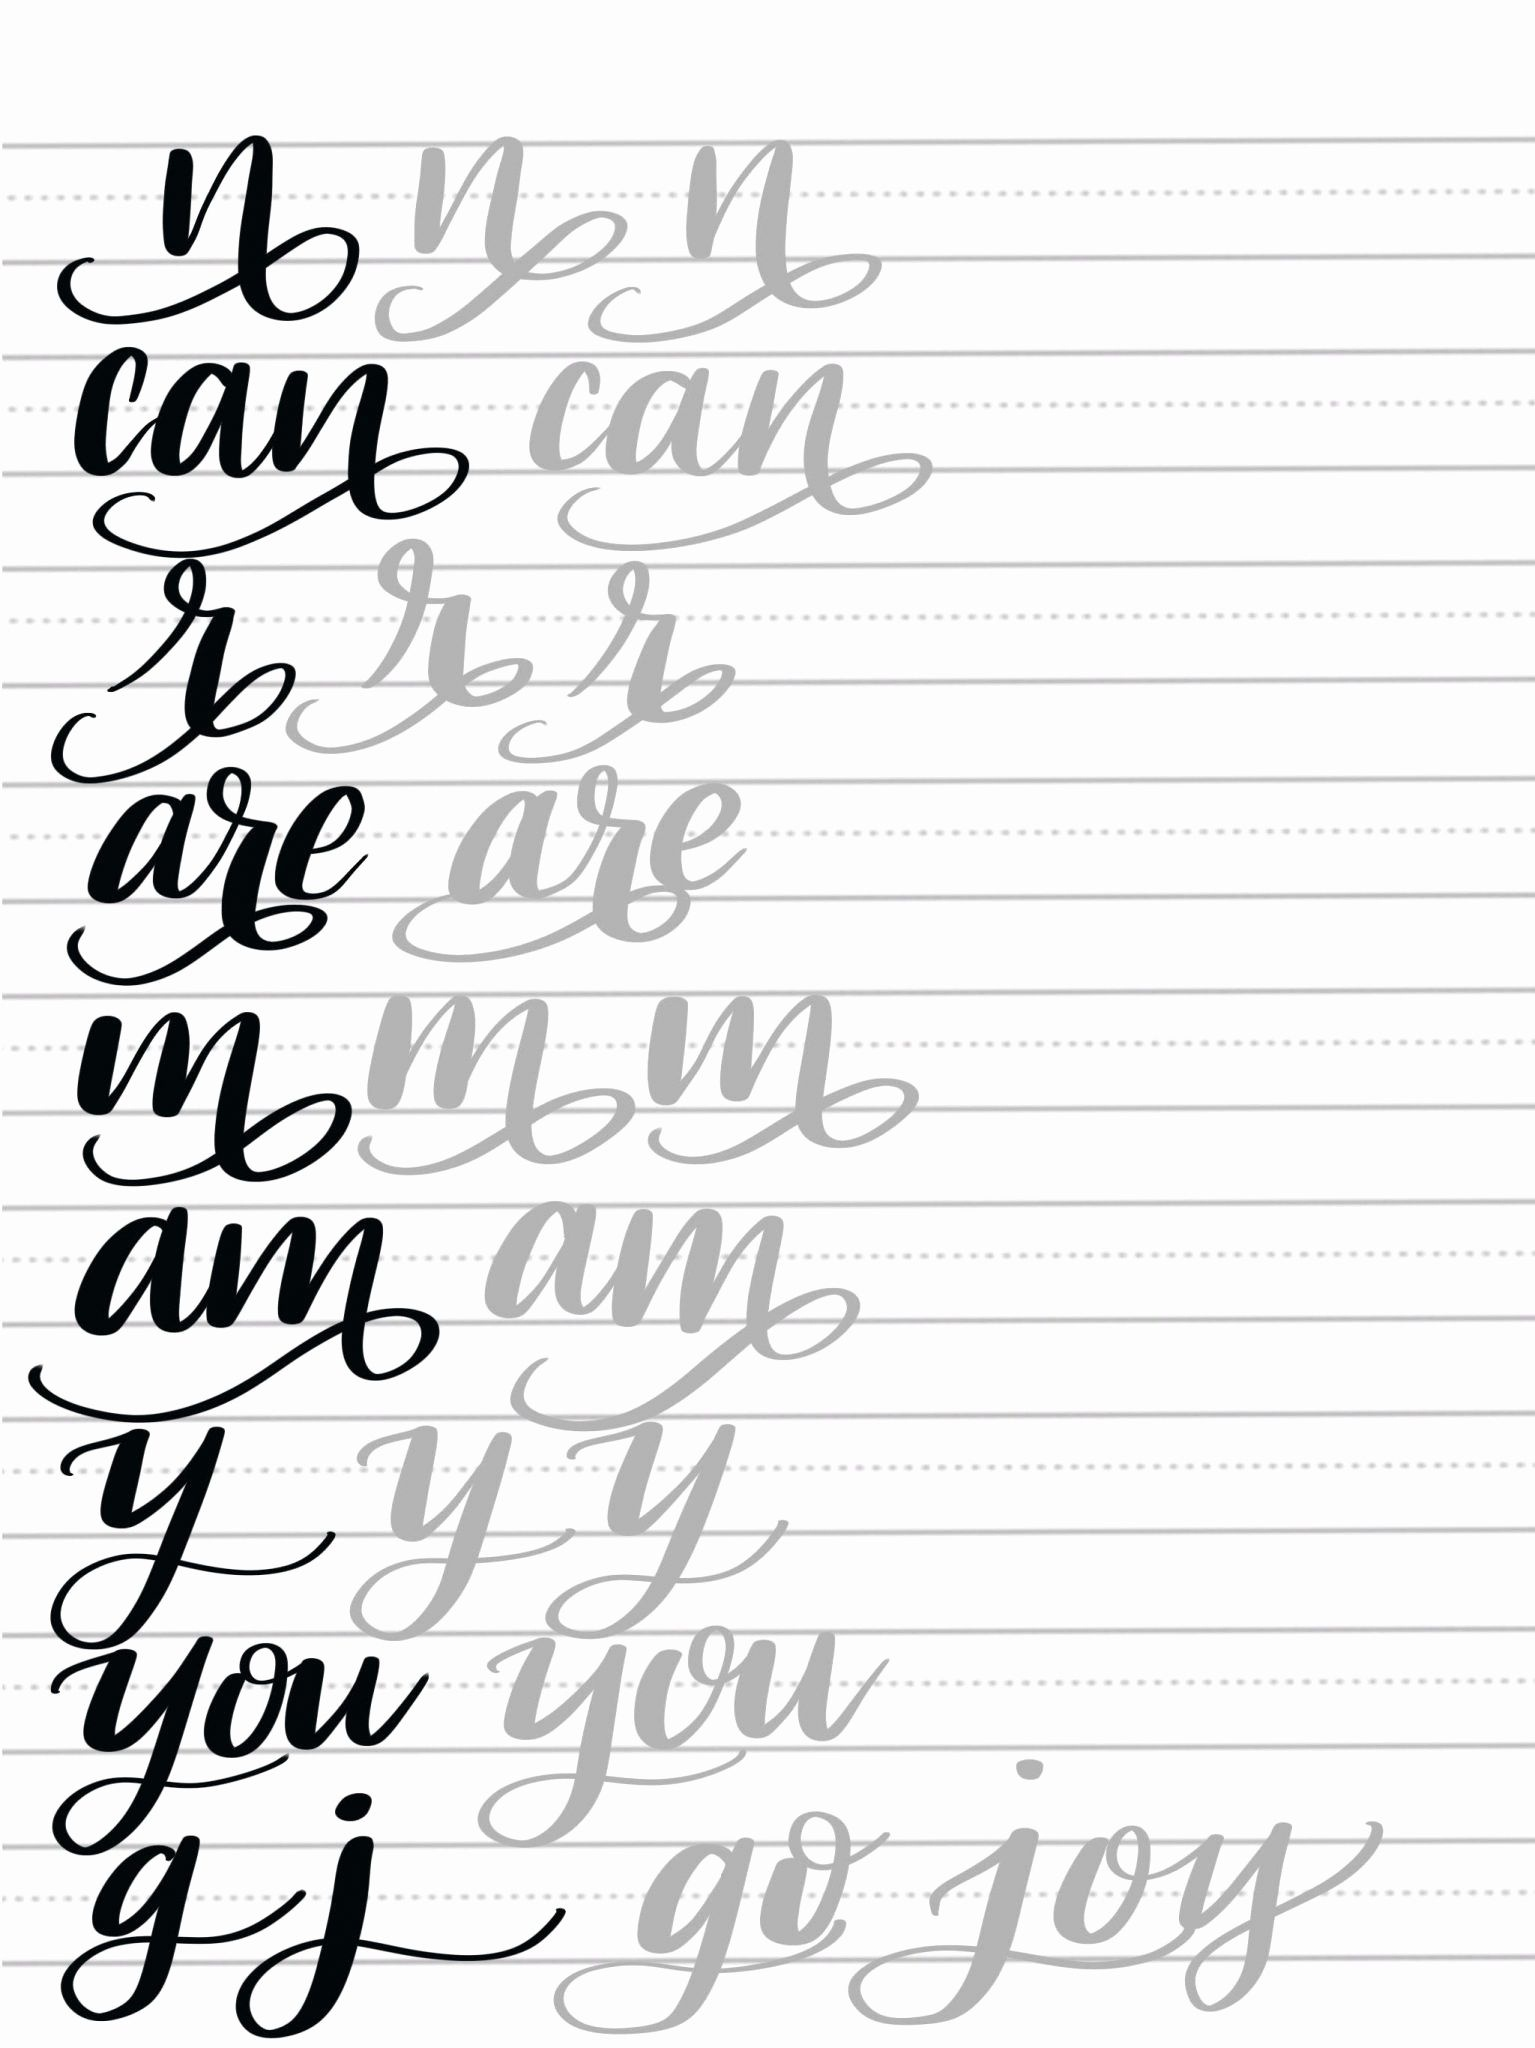 Calligraphy Letters Practice Sheets Fresh Hand Lettering Flourish - Calligraphy Practice Sheets Printable Free